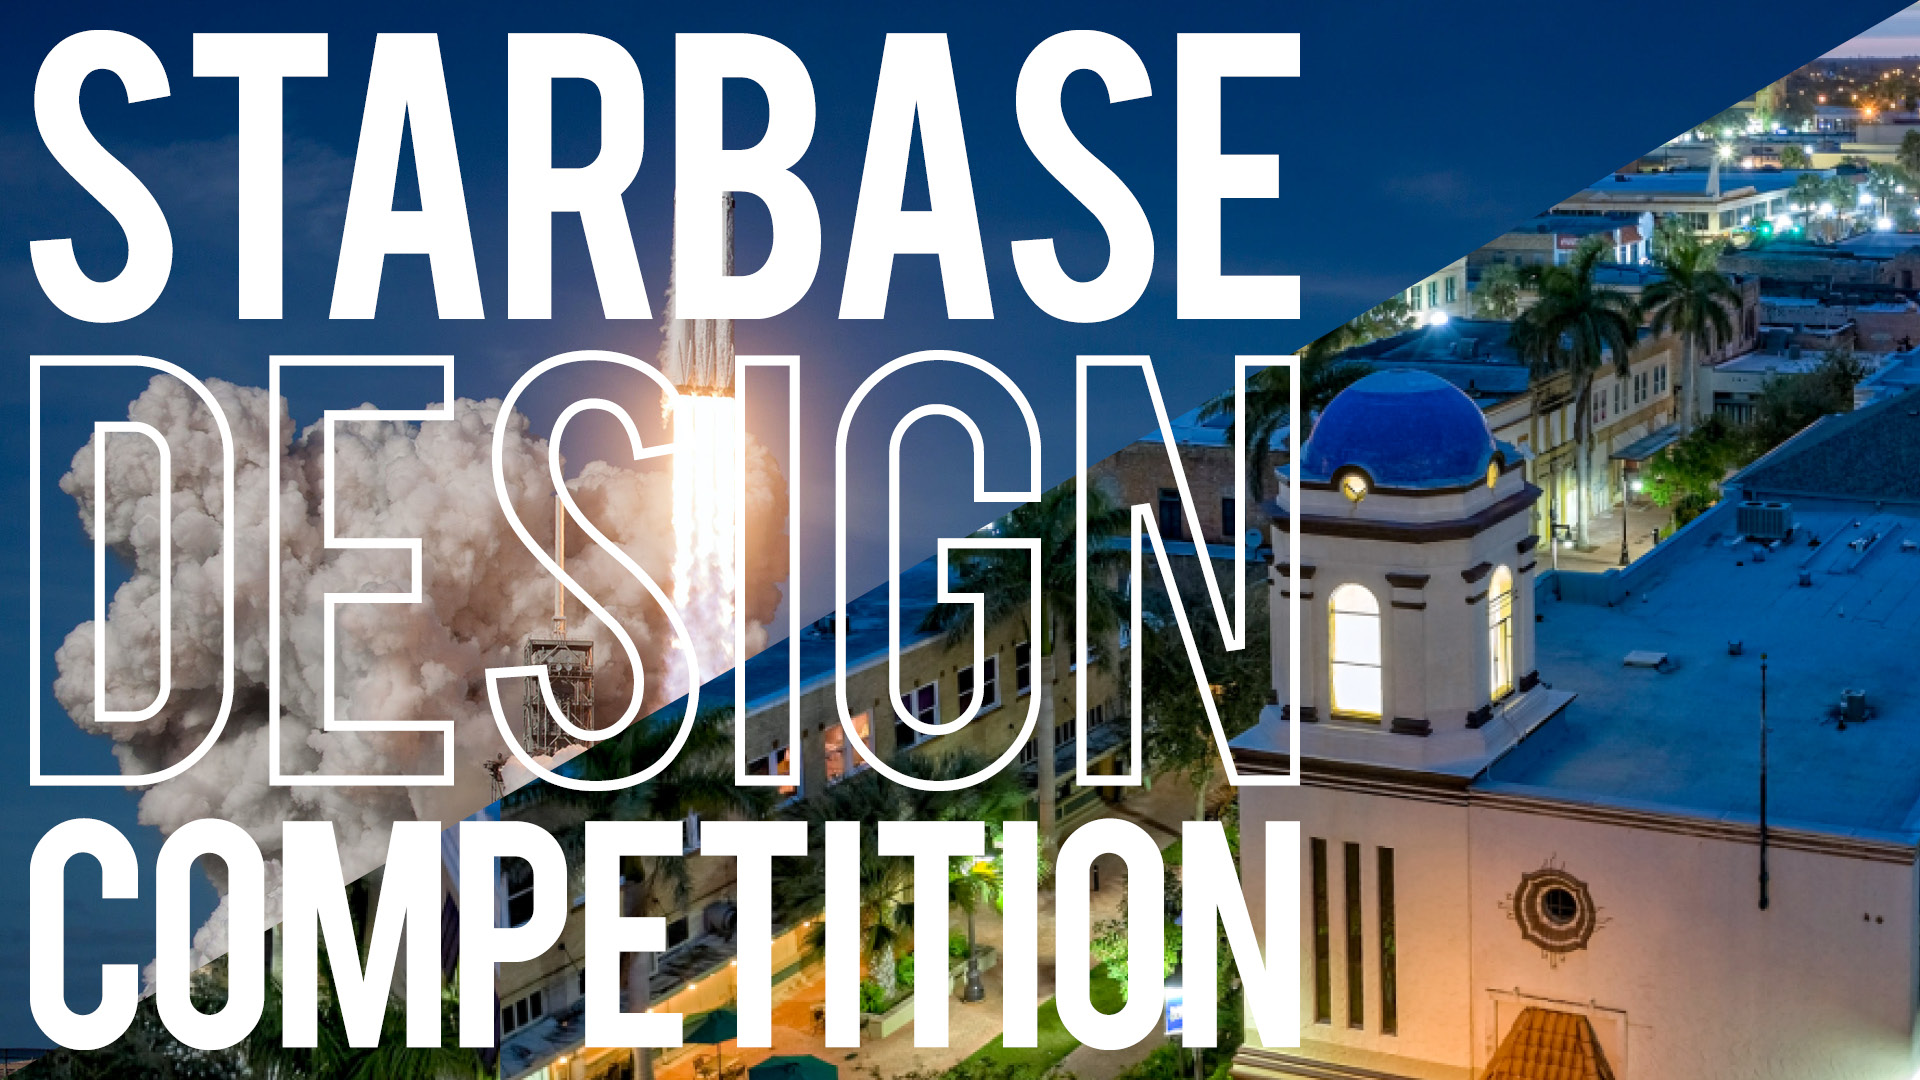 Starbase Design Competition